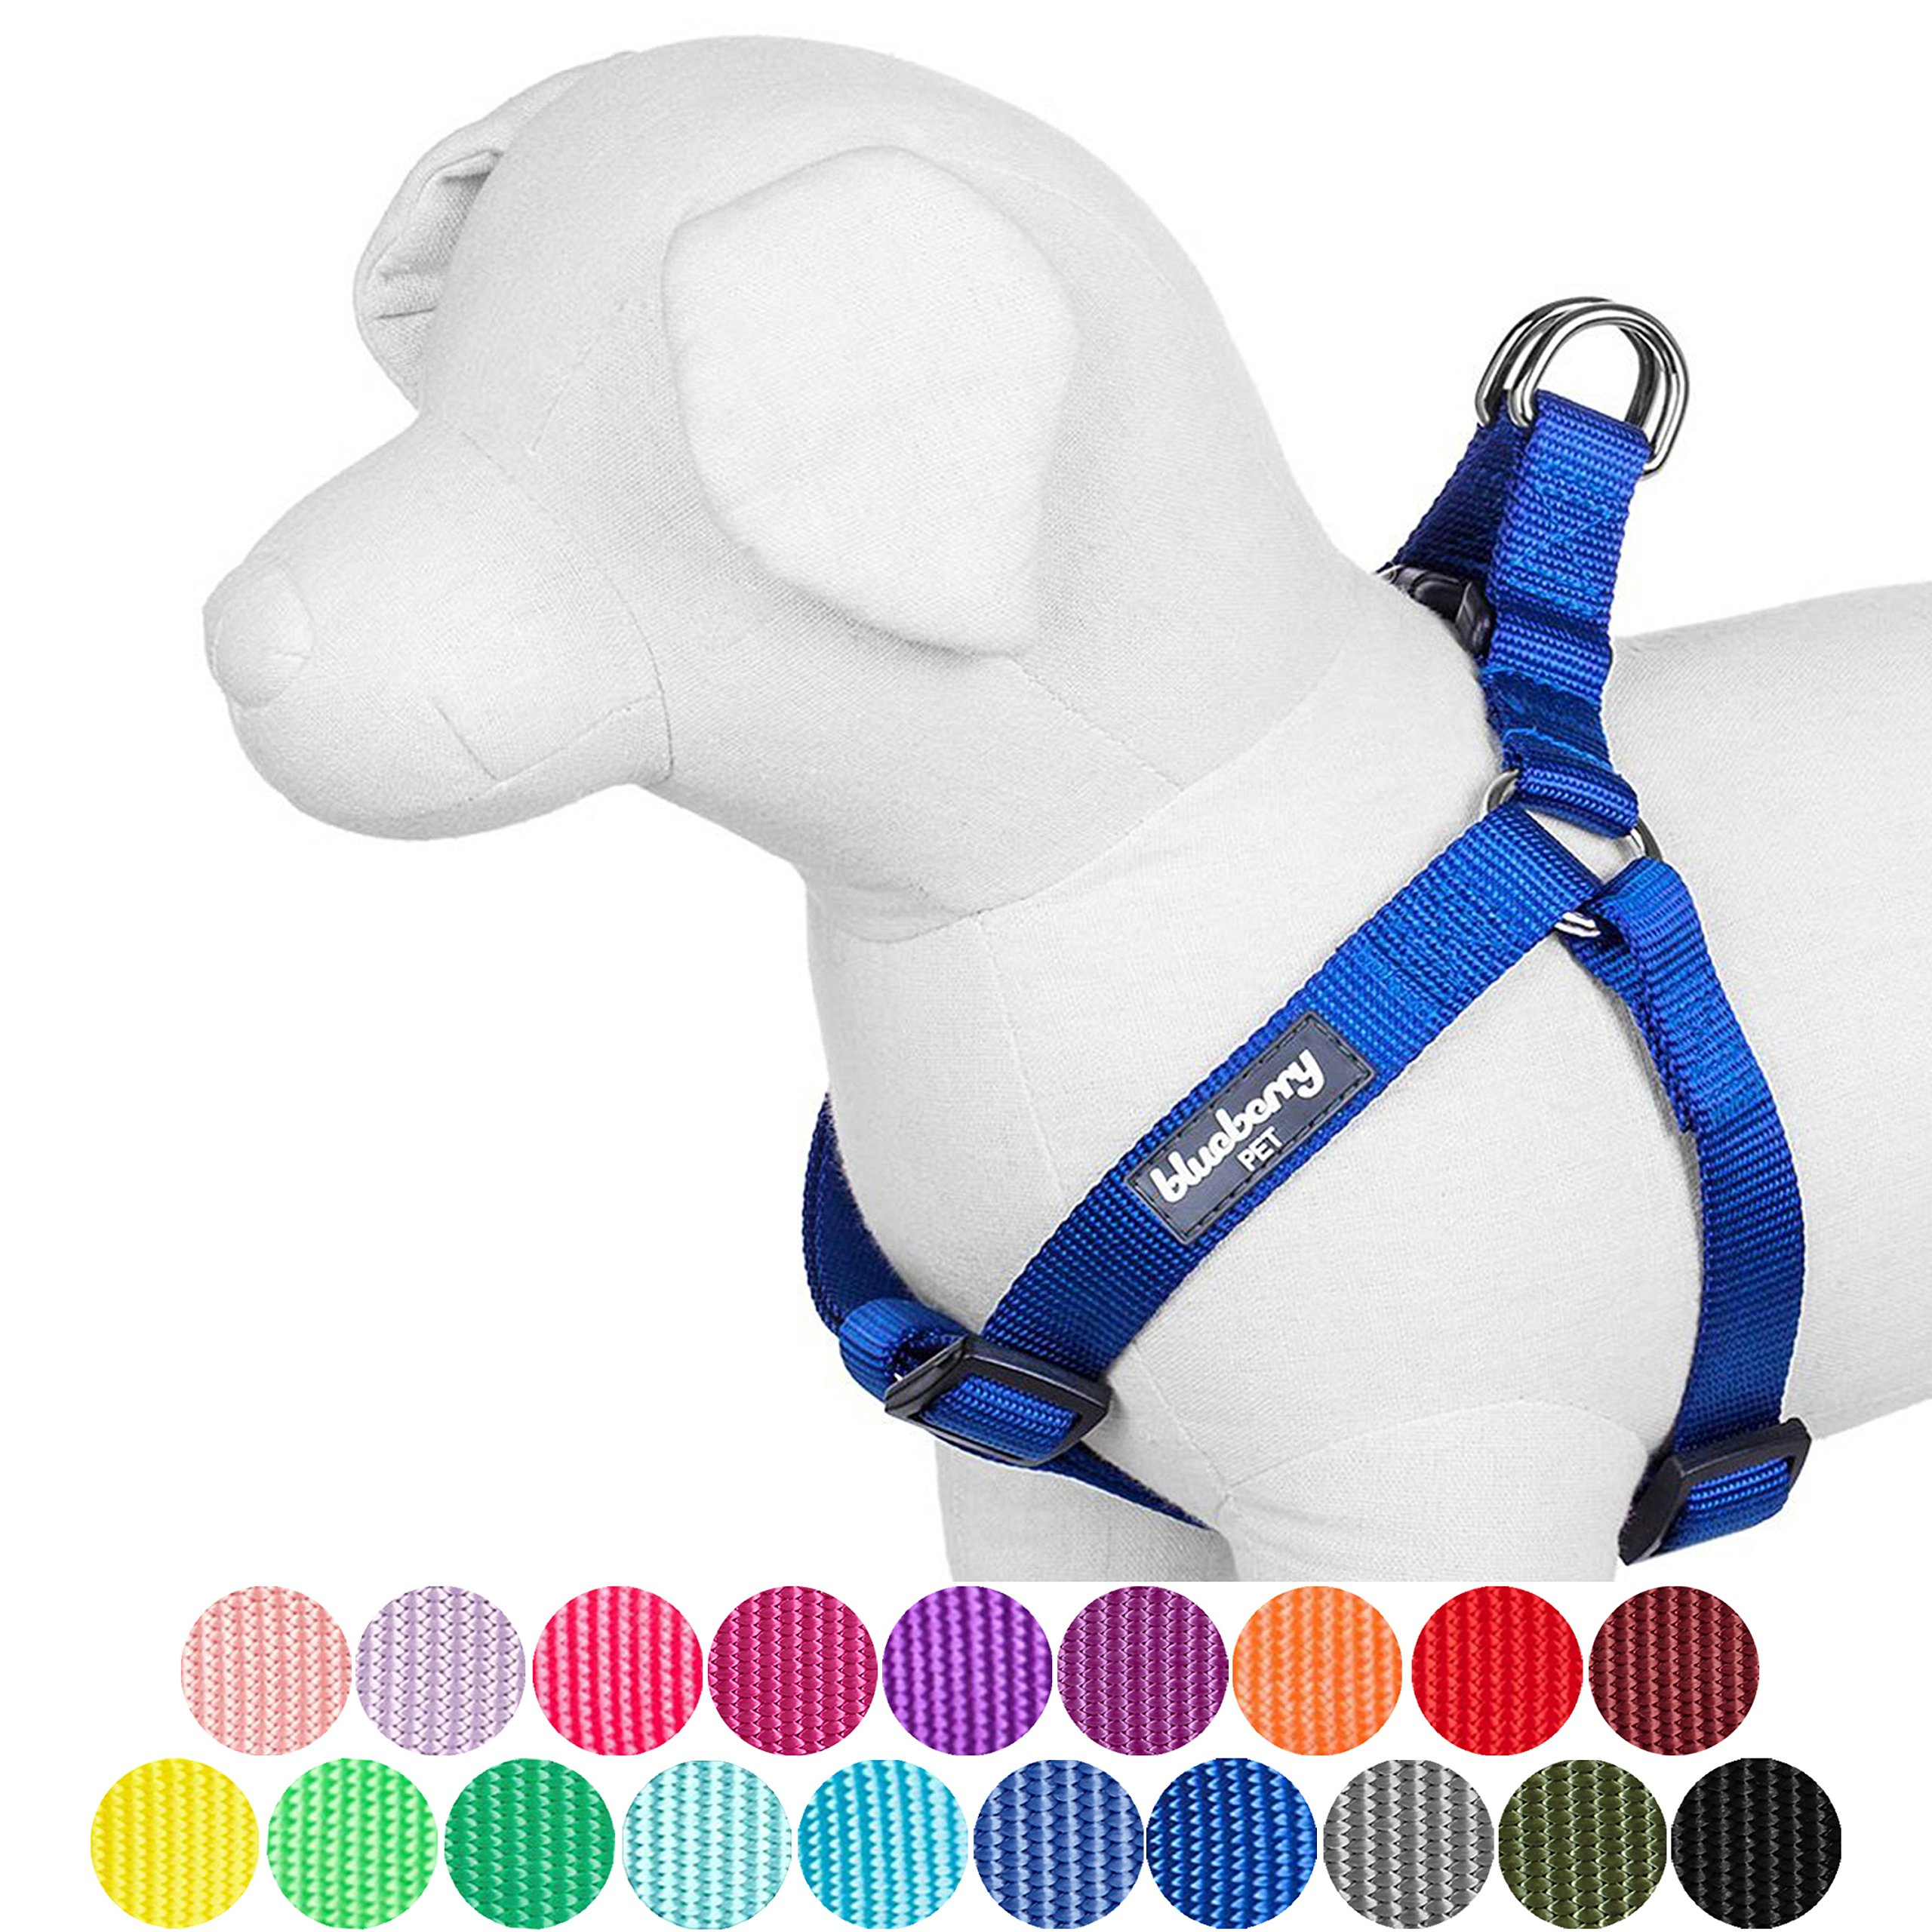 Blueberry Pet 19 Colors Step-in Classic Dog Harness, Chest Girth 20'' - 26'', Royal Blue, Medium, Adjustable Harnesses for Dogs